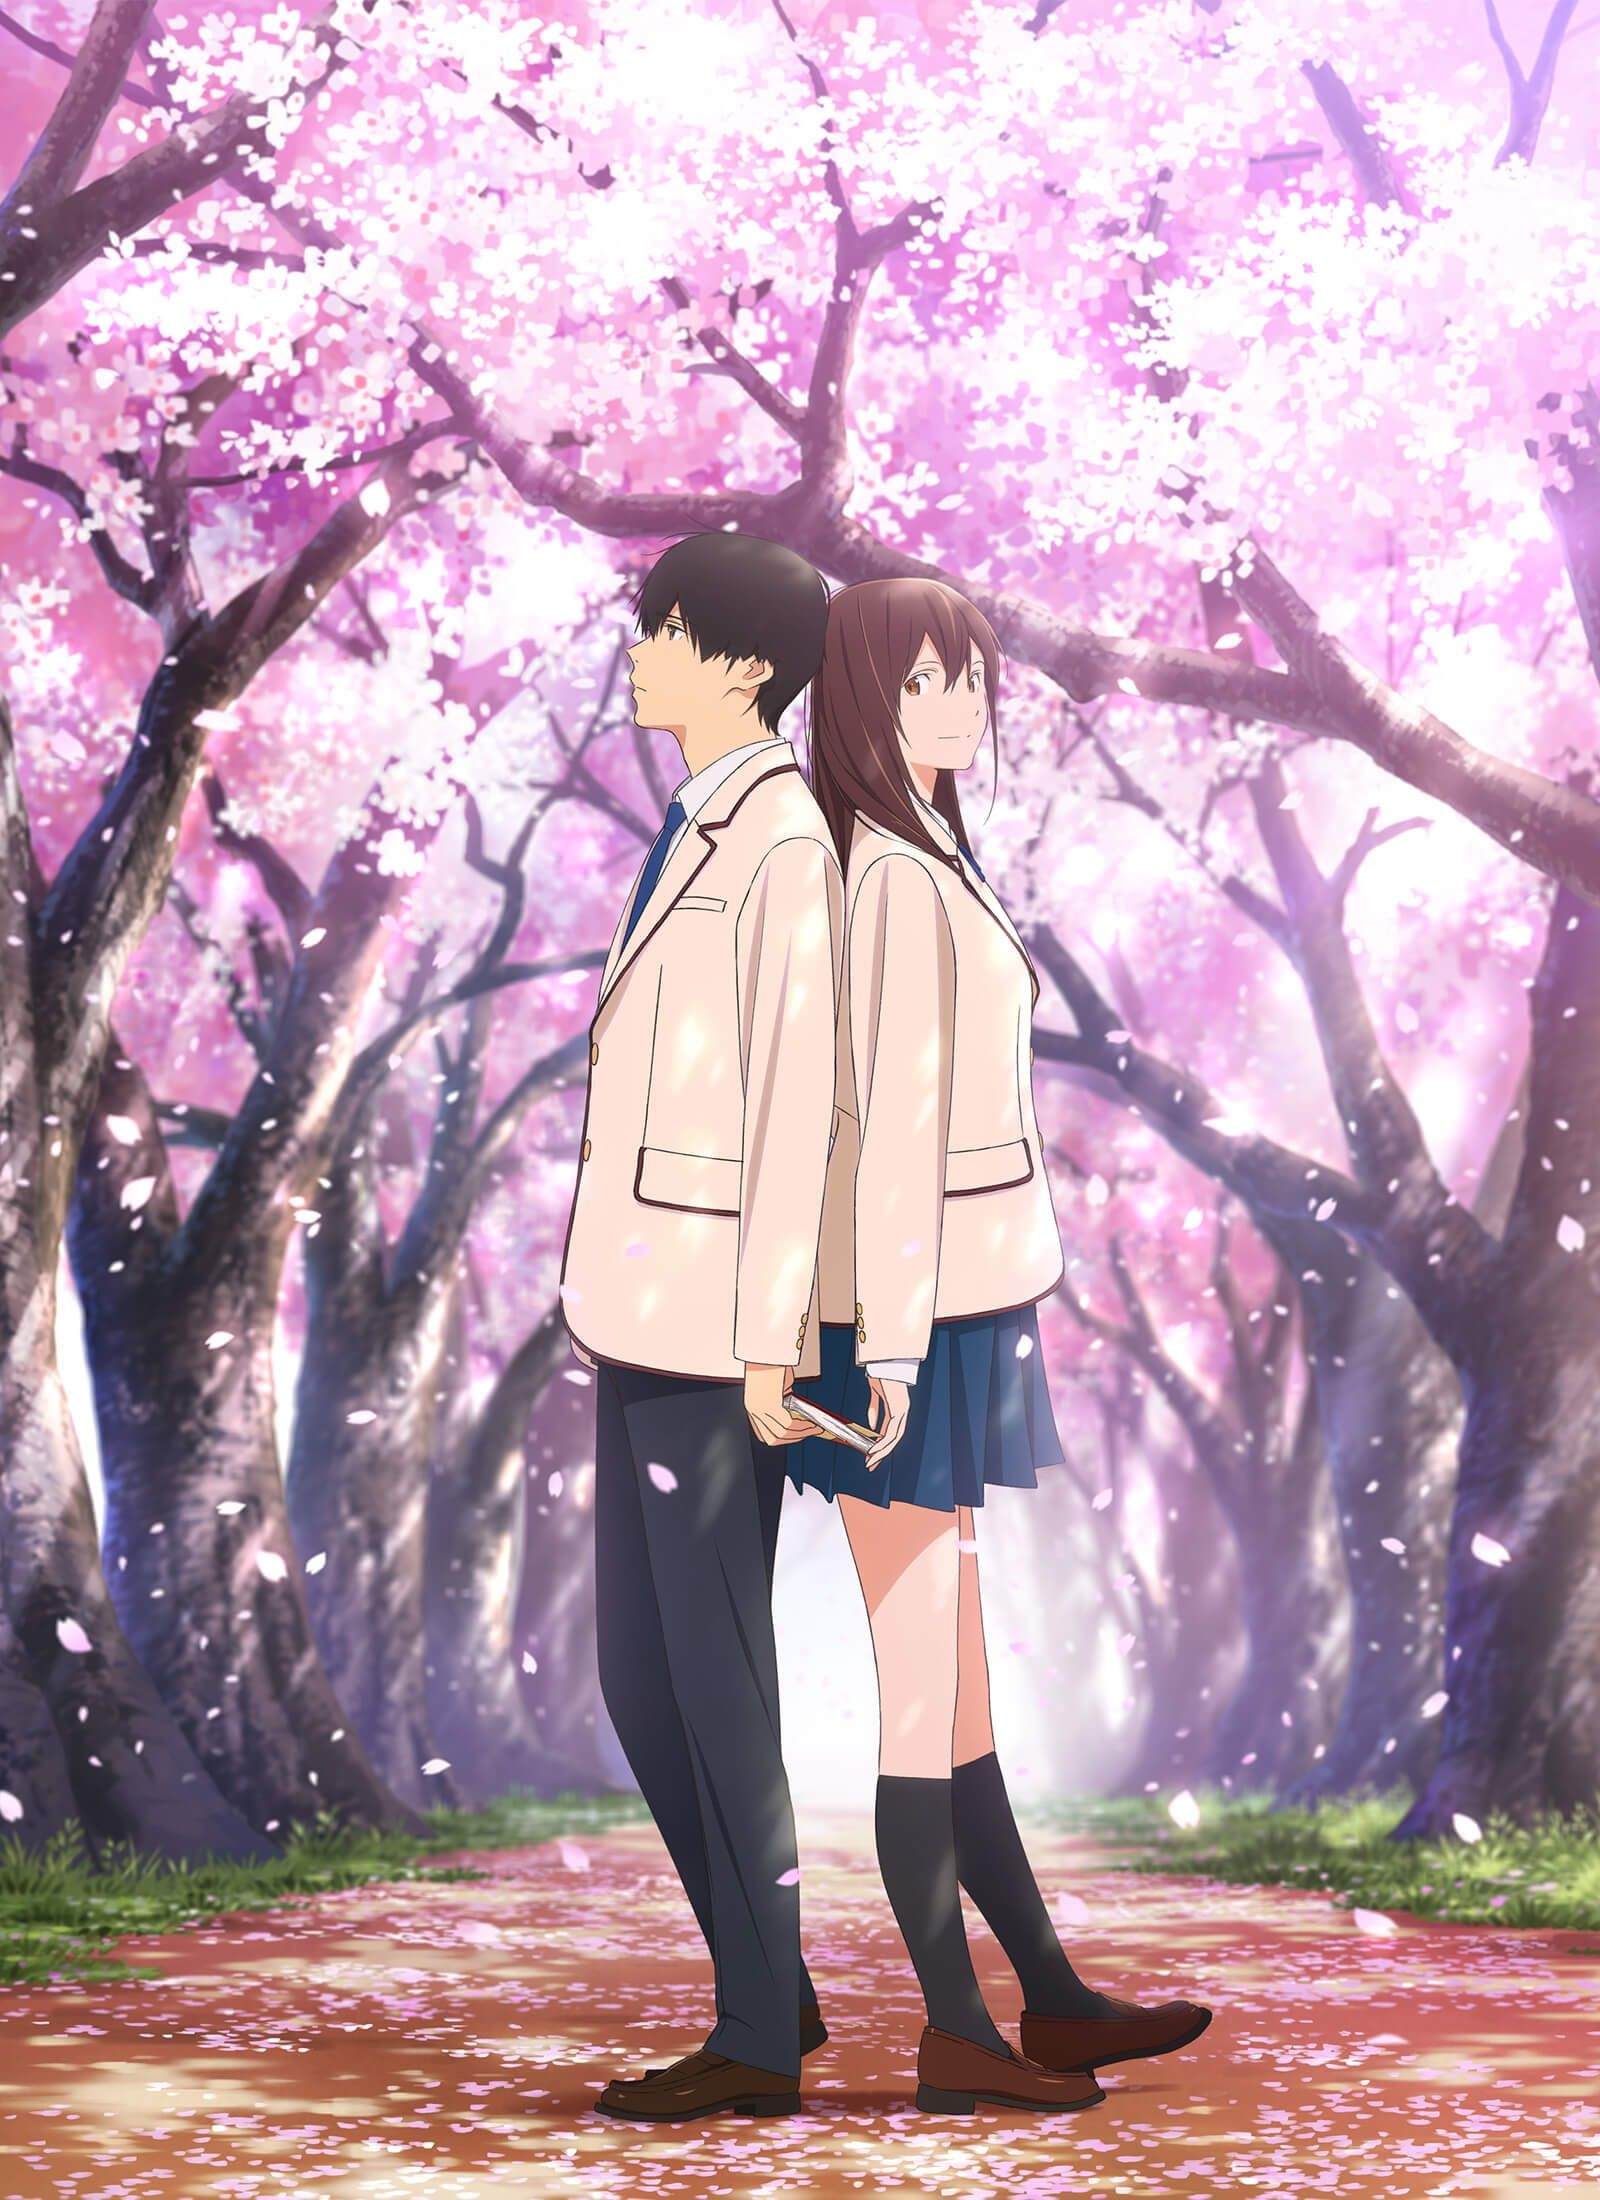 2019 Anime Japanese Films Coming To U S Theaters Anime